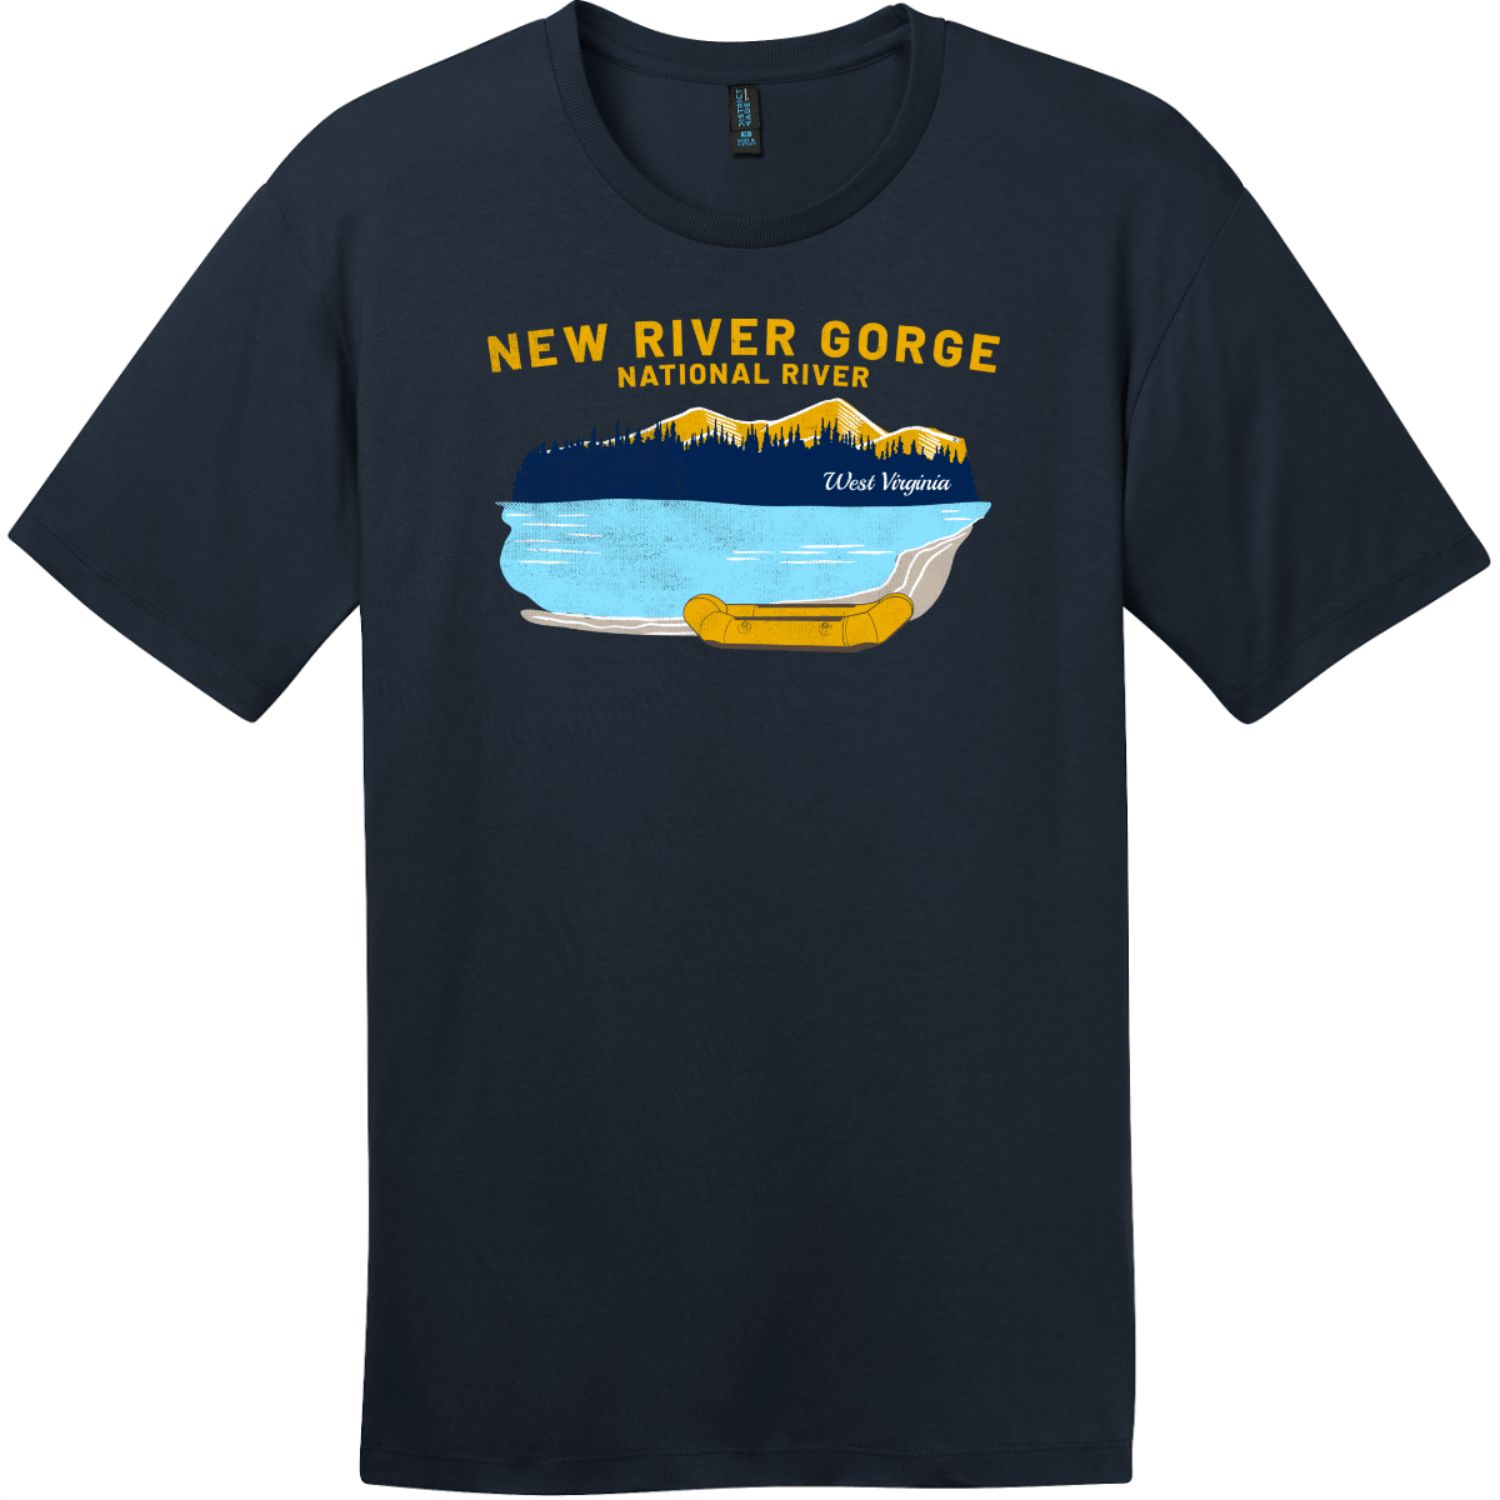 New River Gorge Rafting T-Shirt New Navy District Perfect Weight Tee DT104